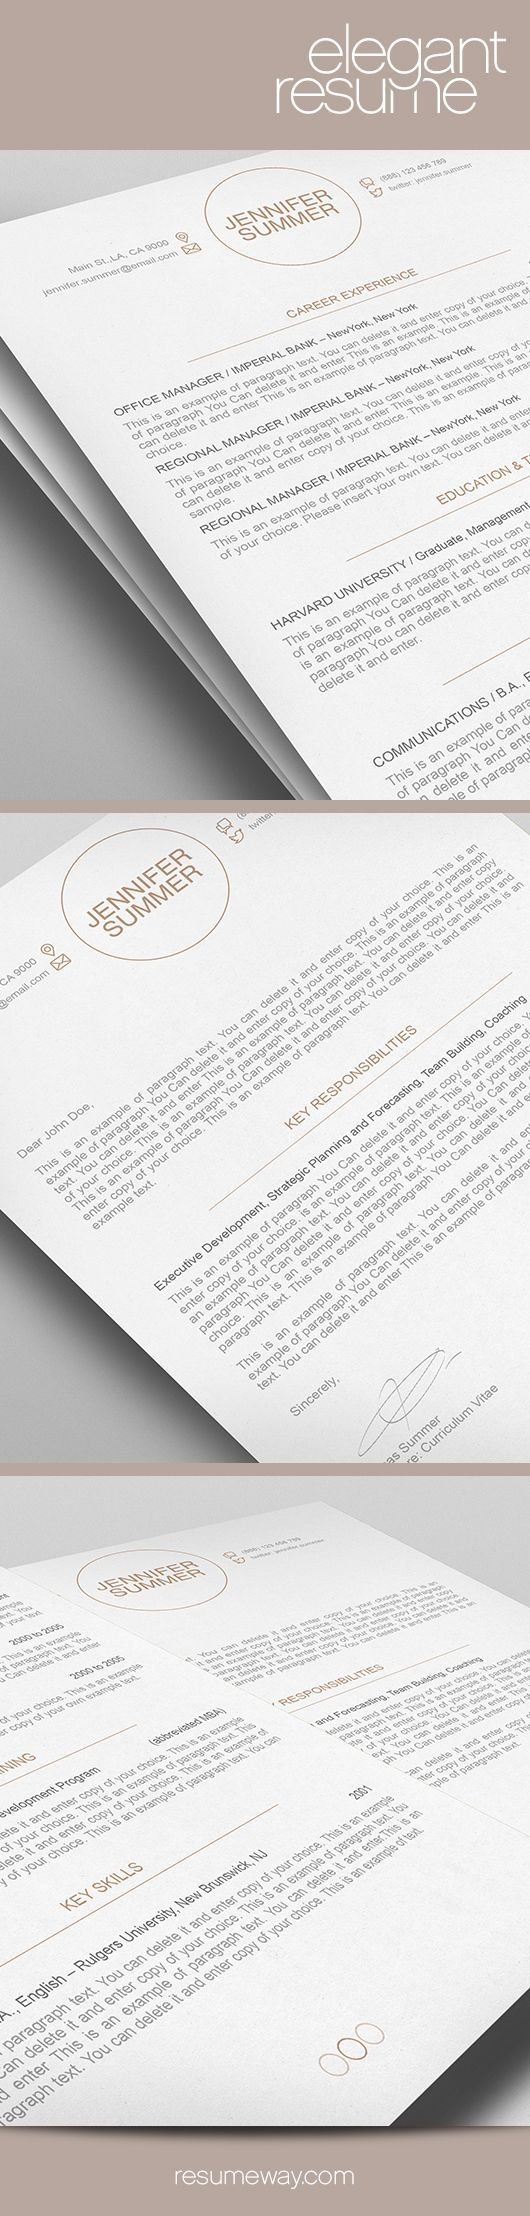 Best 25 Resume Cover Letters Ideas On Pinterest Cover Letter